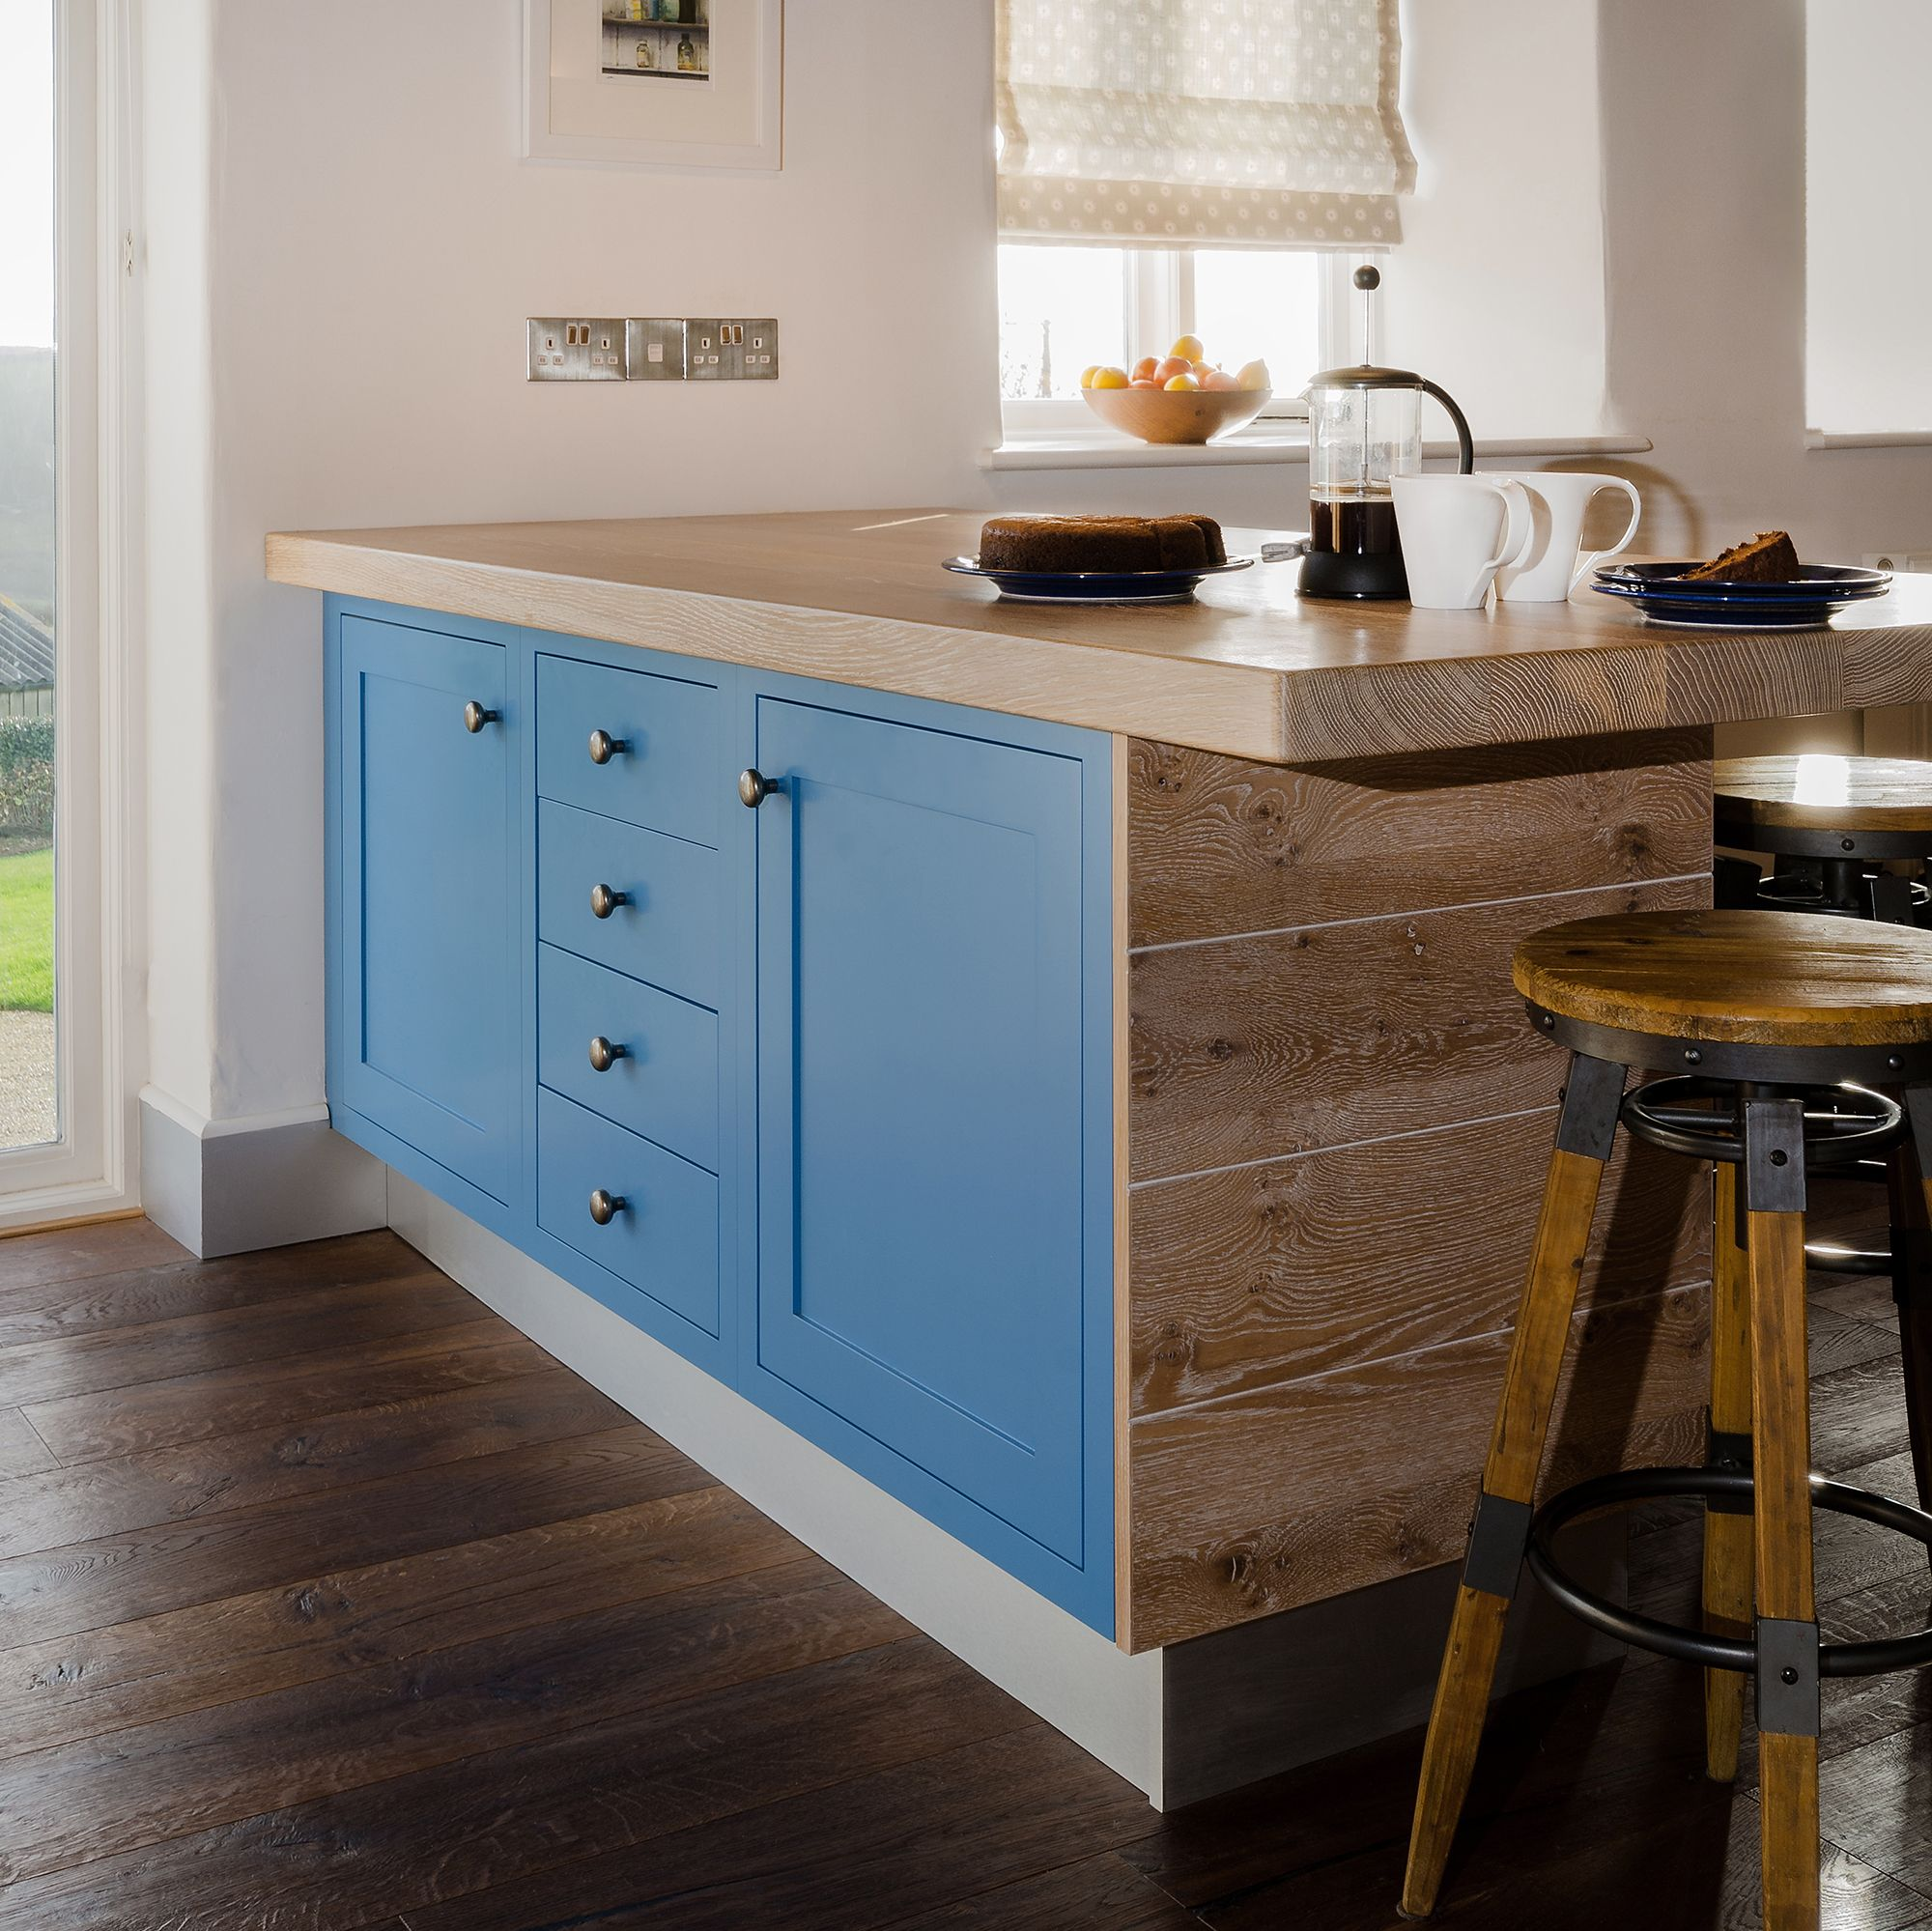 Introducing colour to a kitchen island. Mix and matching paint and ...